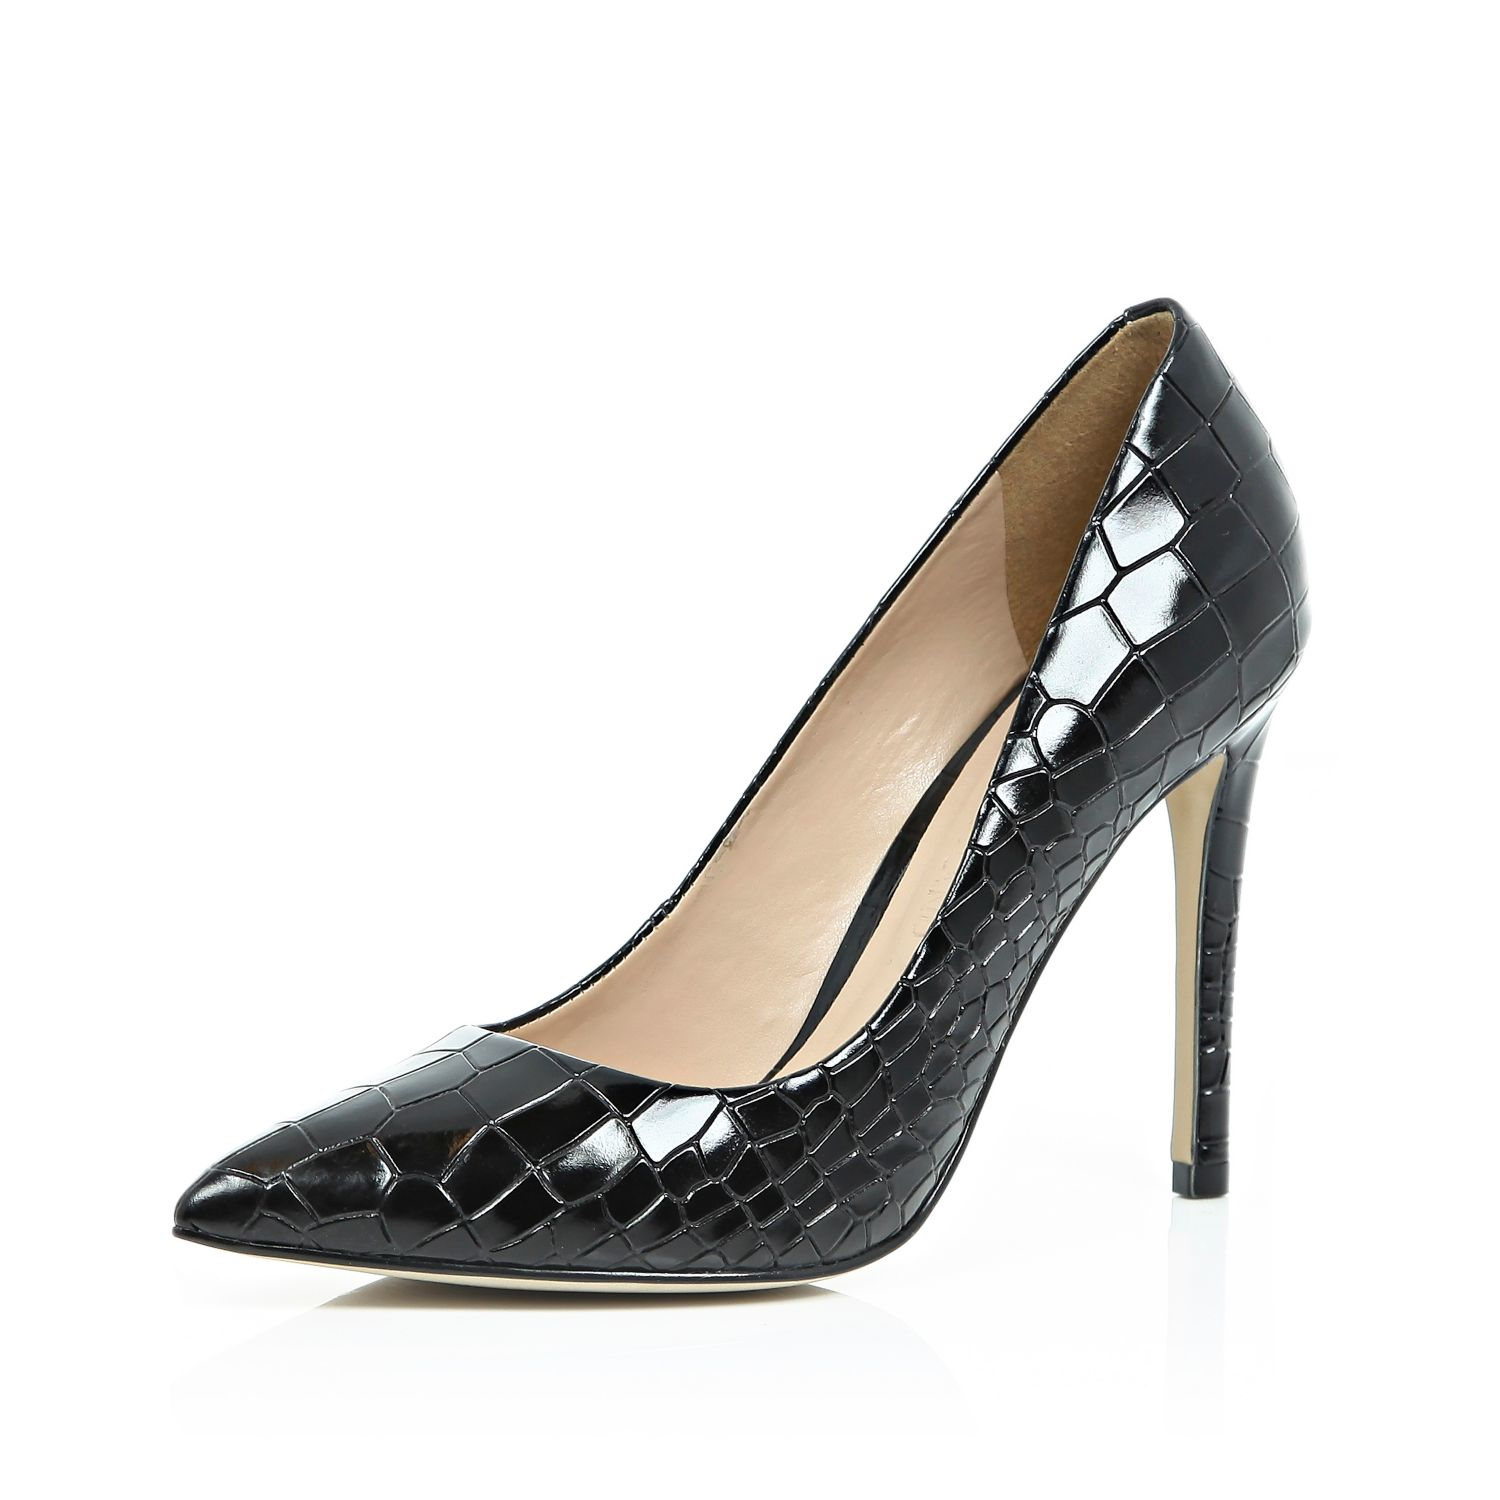 25550e1b67a Lyst - River Island Black Patent Leather Croc Court Shoes in Black